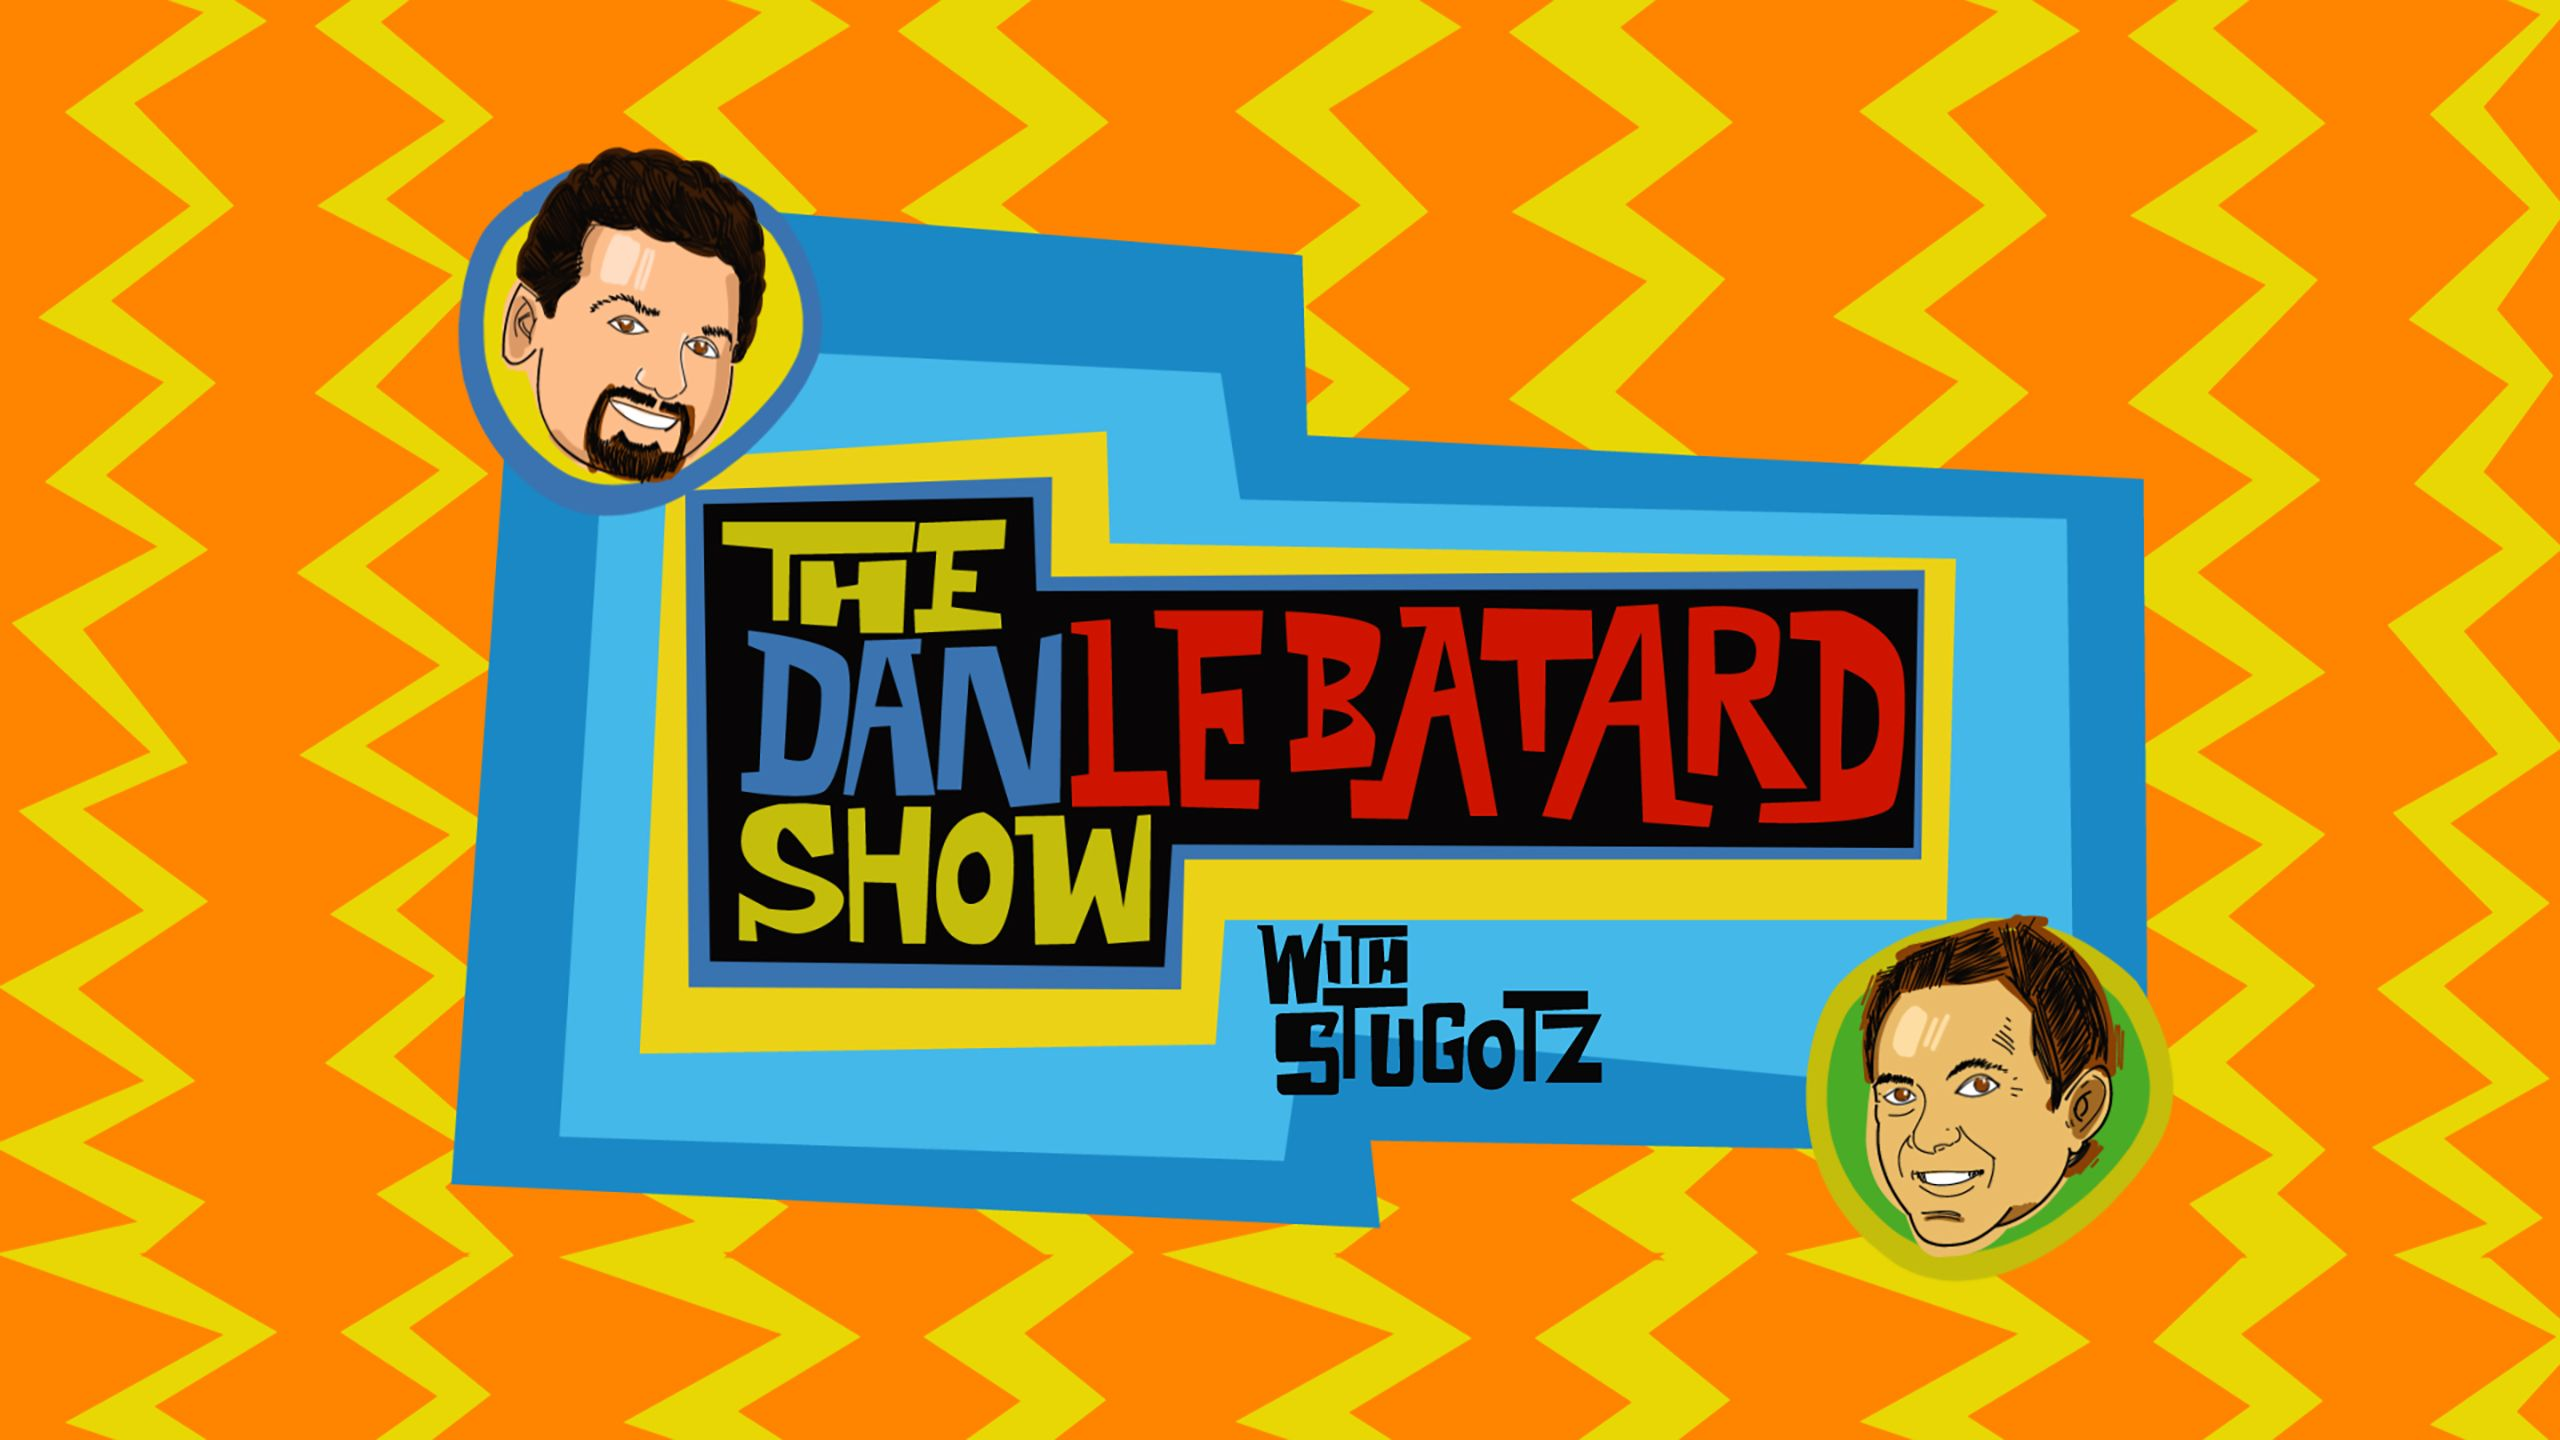 Fri, 1/19 - The Dan Le Batard Show with Stugotz Presented by Progressive